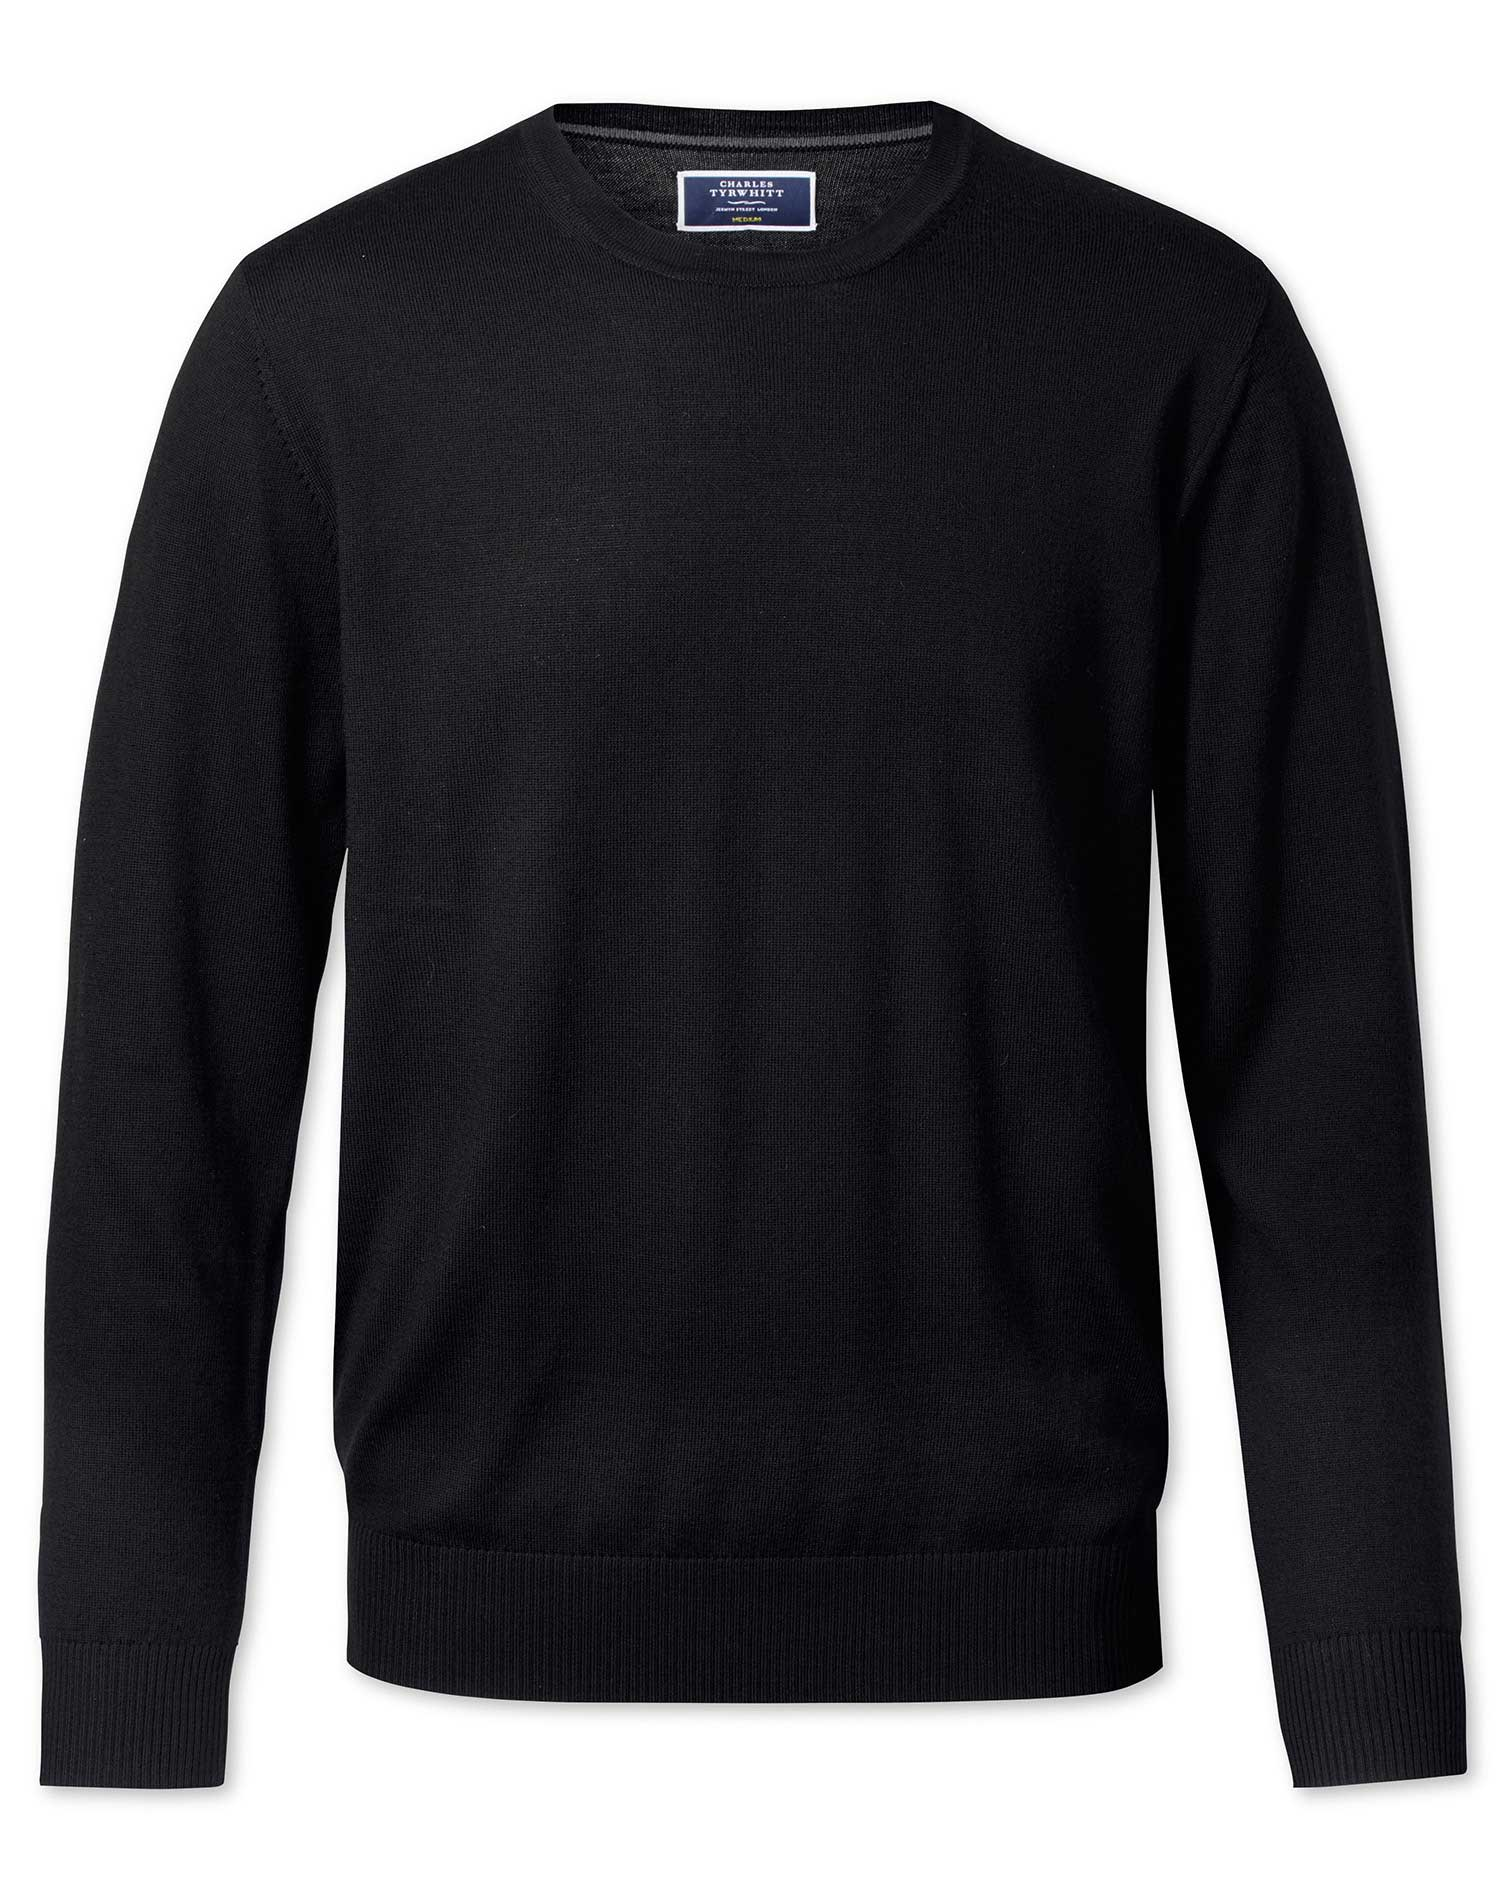 Black Merino Wool Crew Neck Jumper Size XS by Charles Tyrwhitt